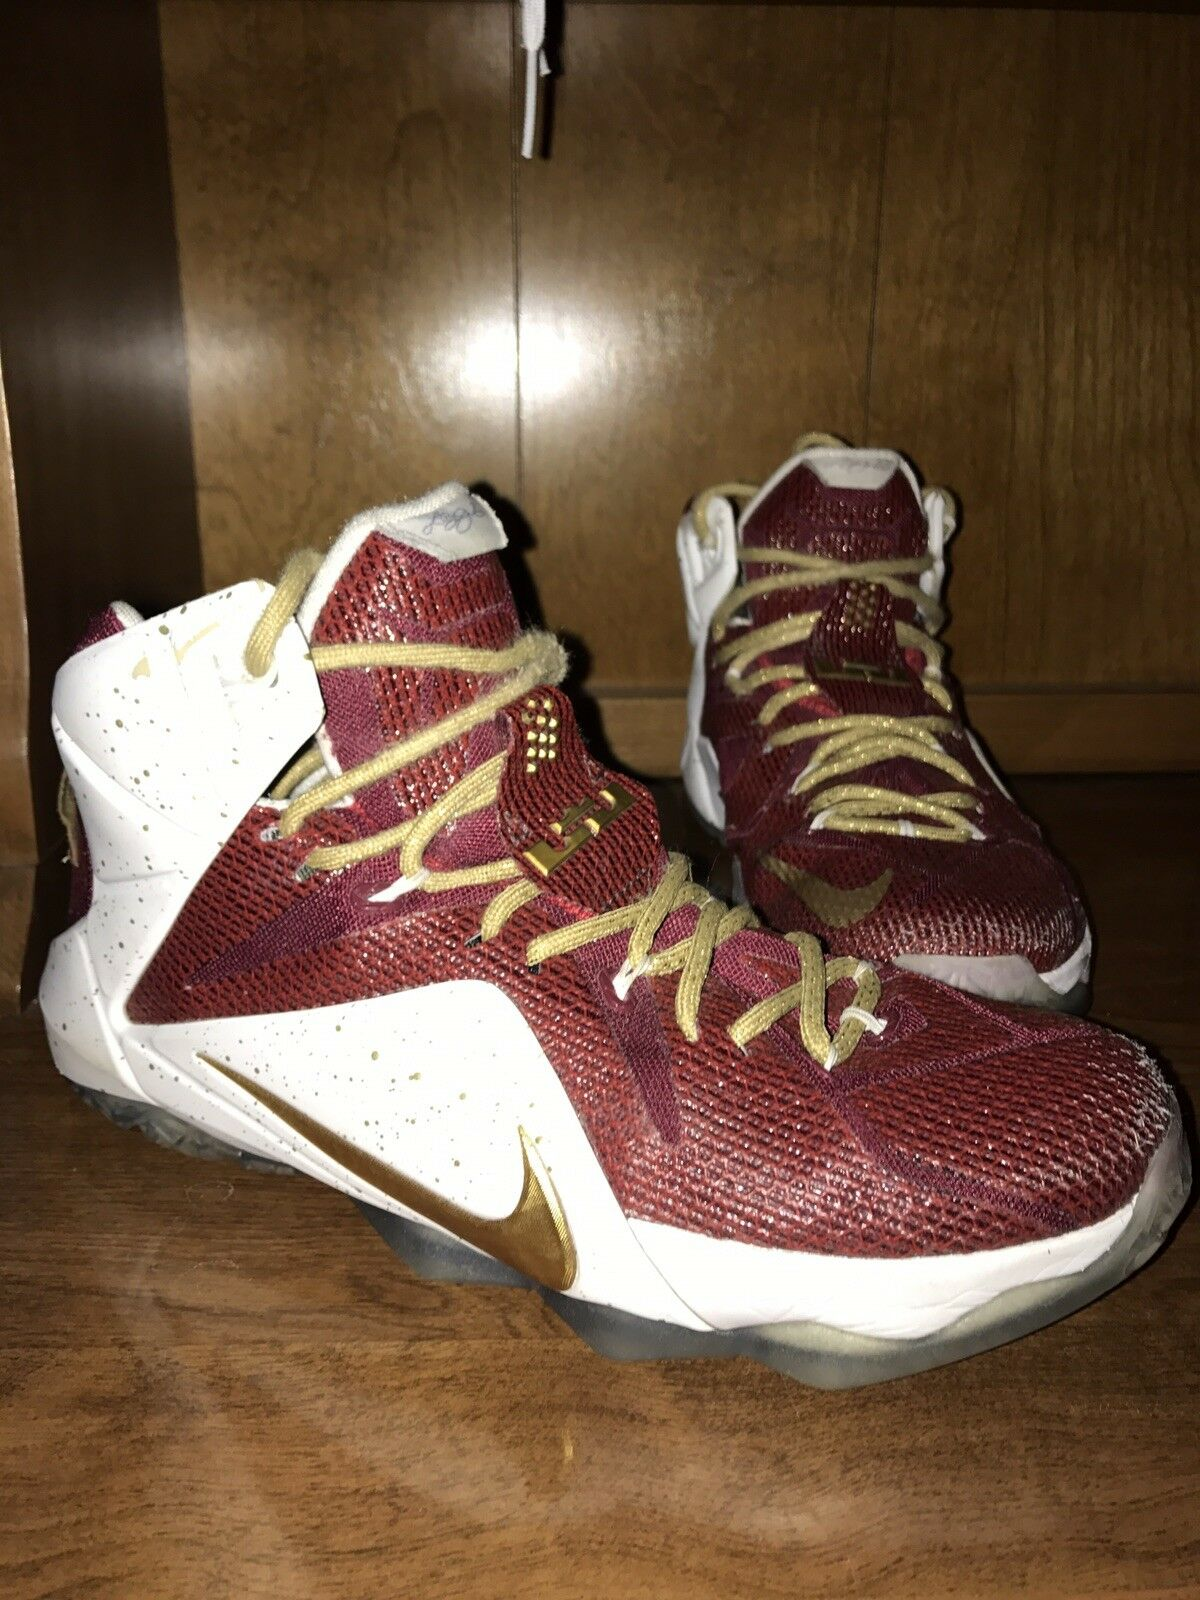 Nike Lebron XII 12 id ID Size Christ 8.5 Mens Cleveland Cavaliers Christ Size The King CTK 9f36fd